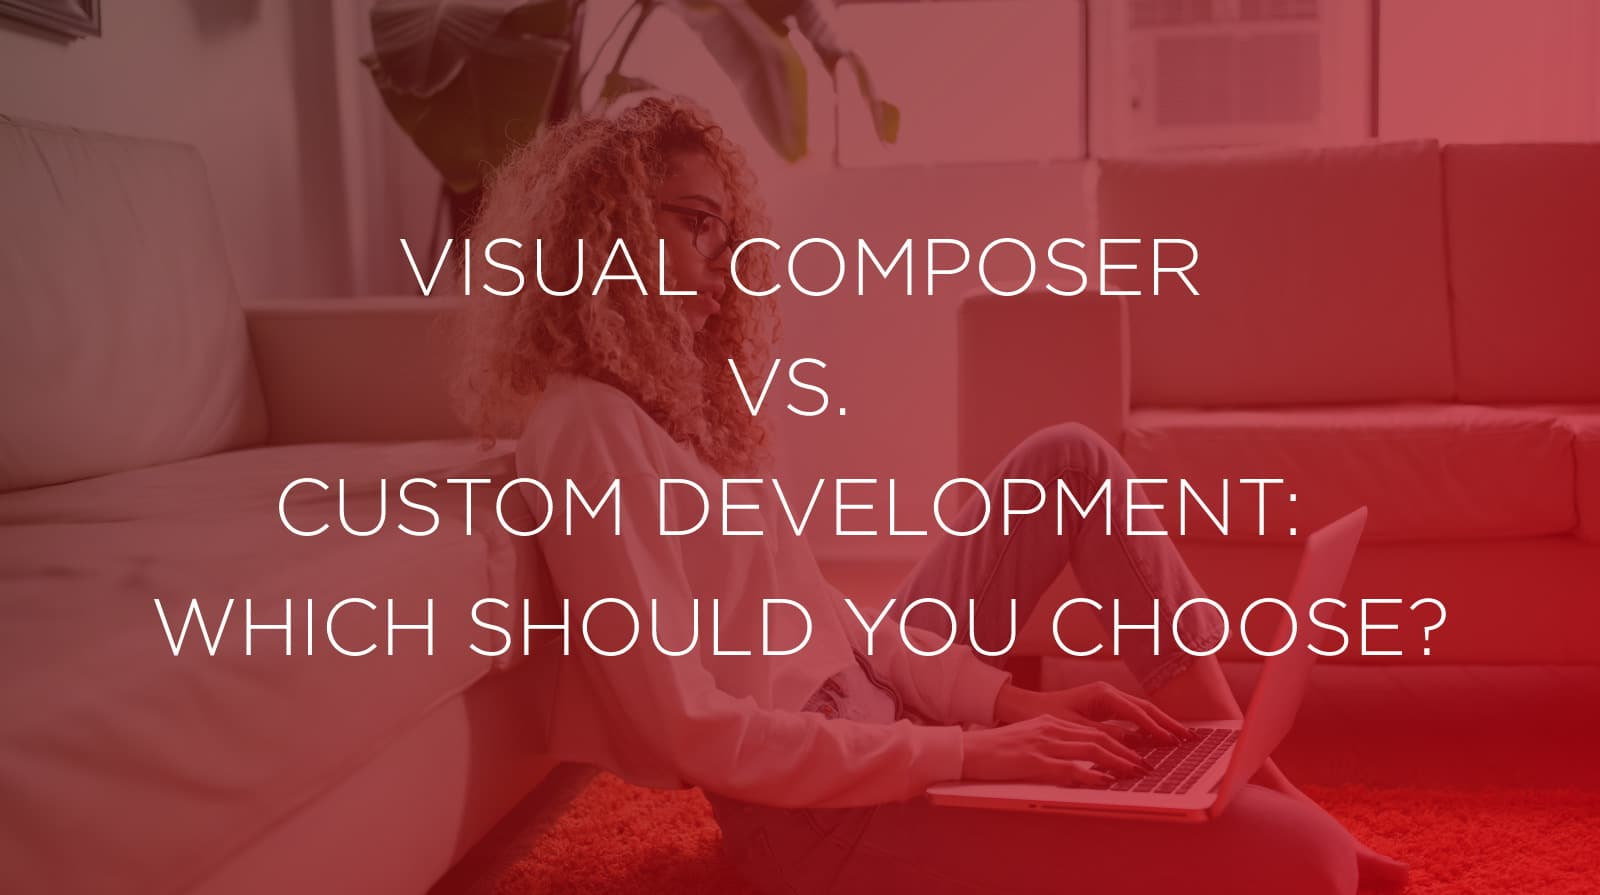 Visual Composer vs. Custom Development